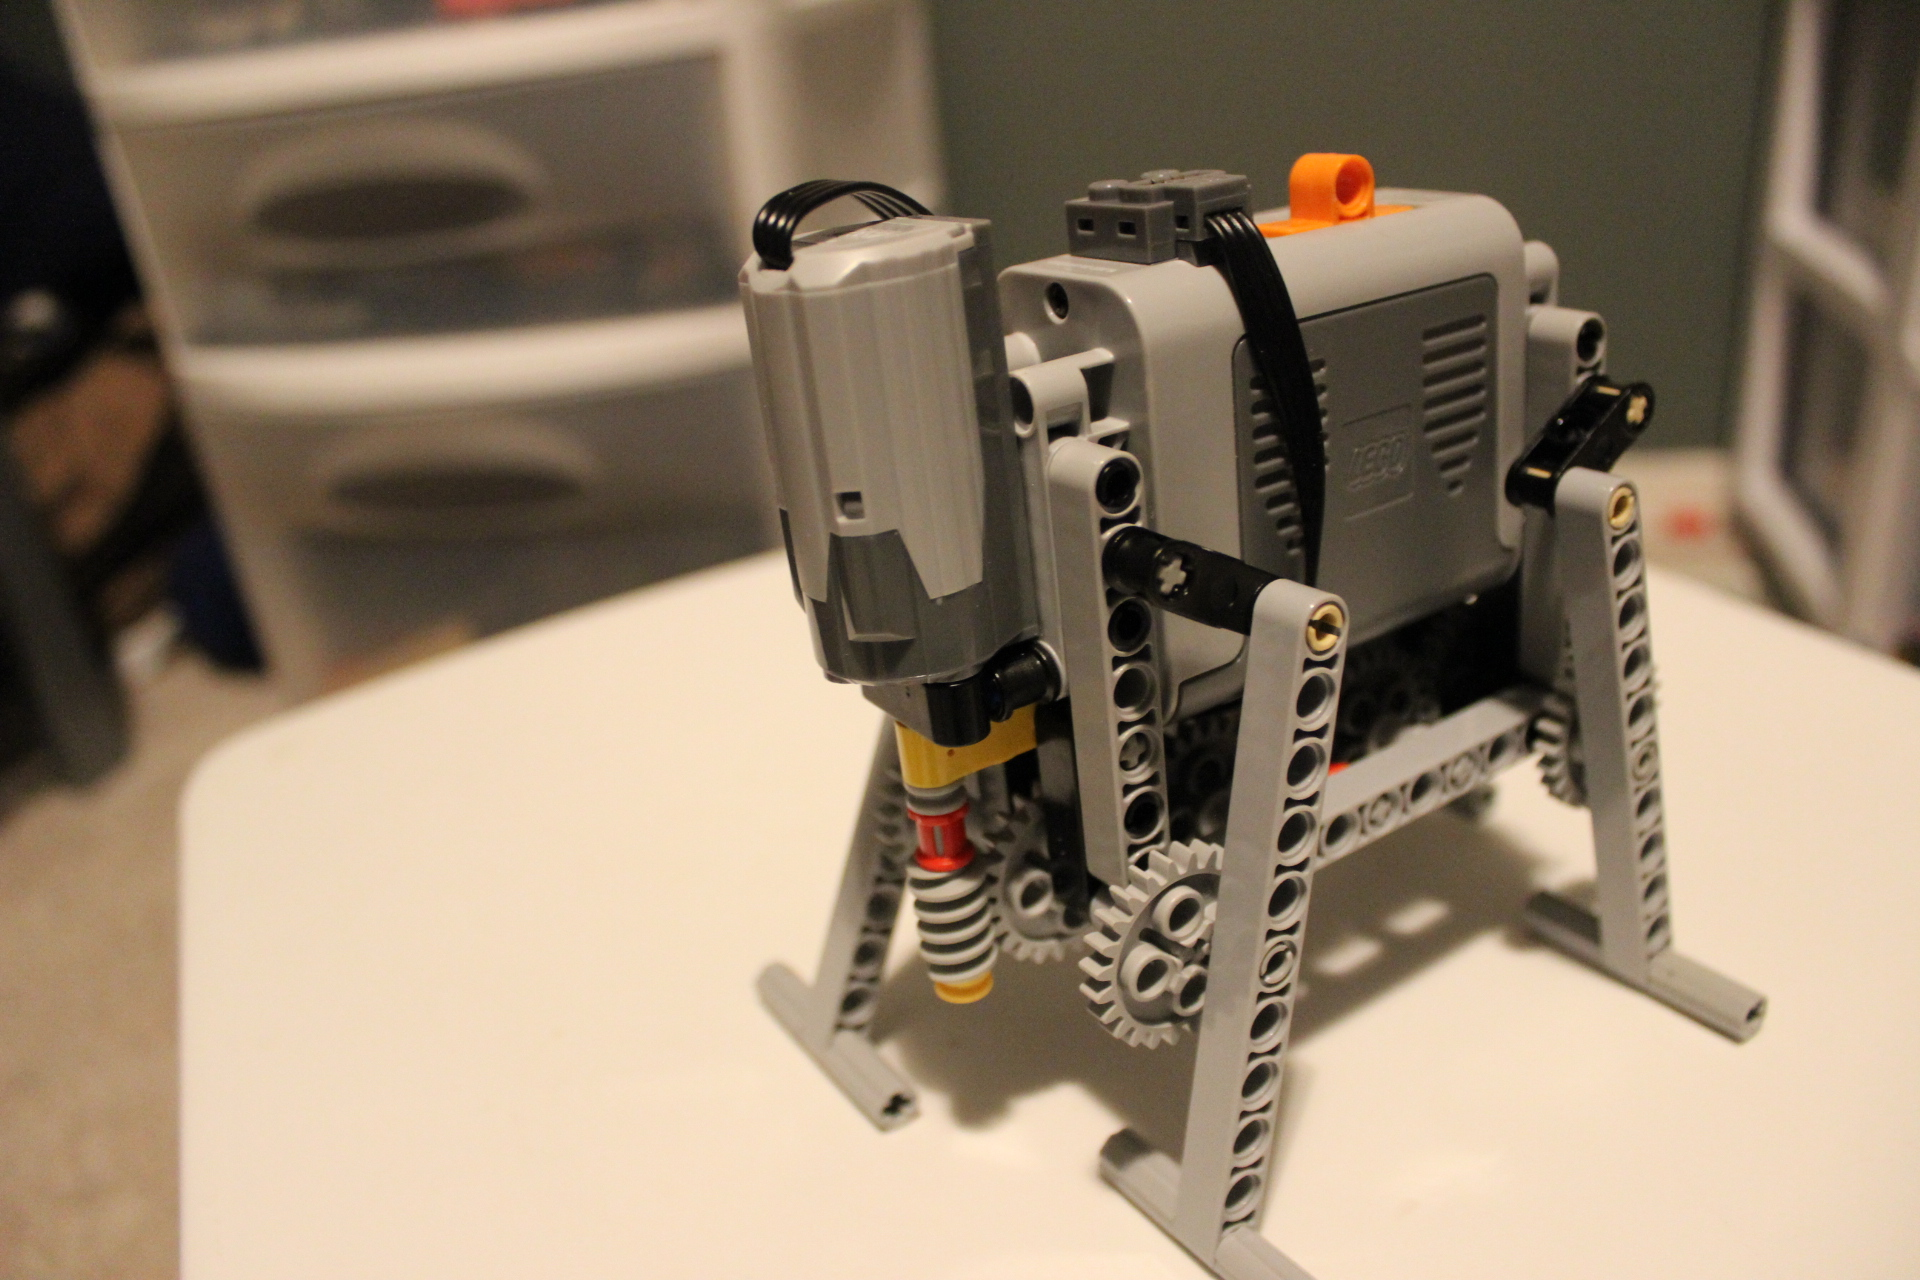 Basic Four-leg LEGO Walker - front angle